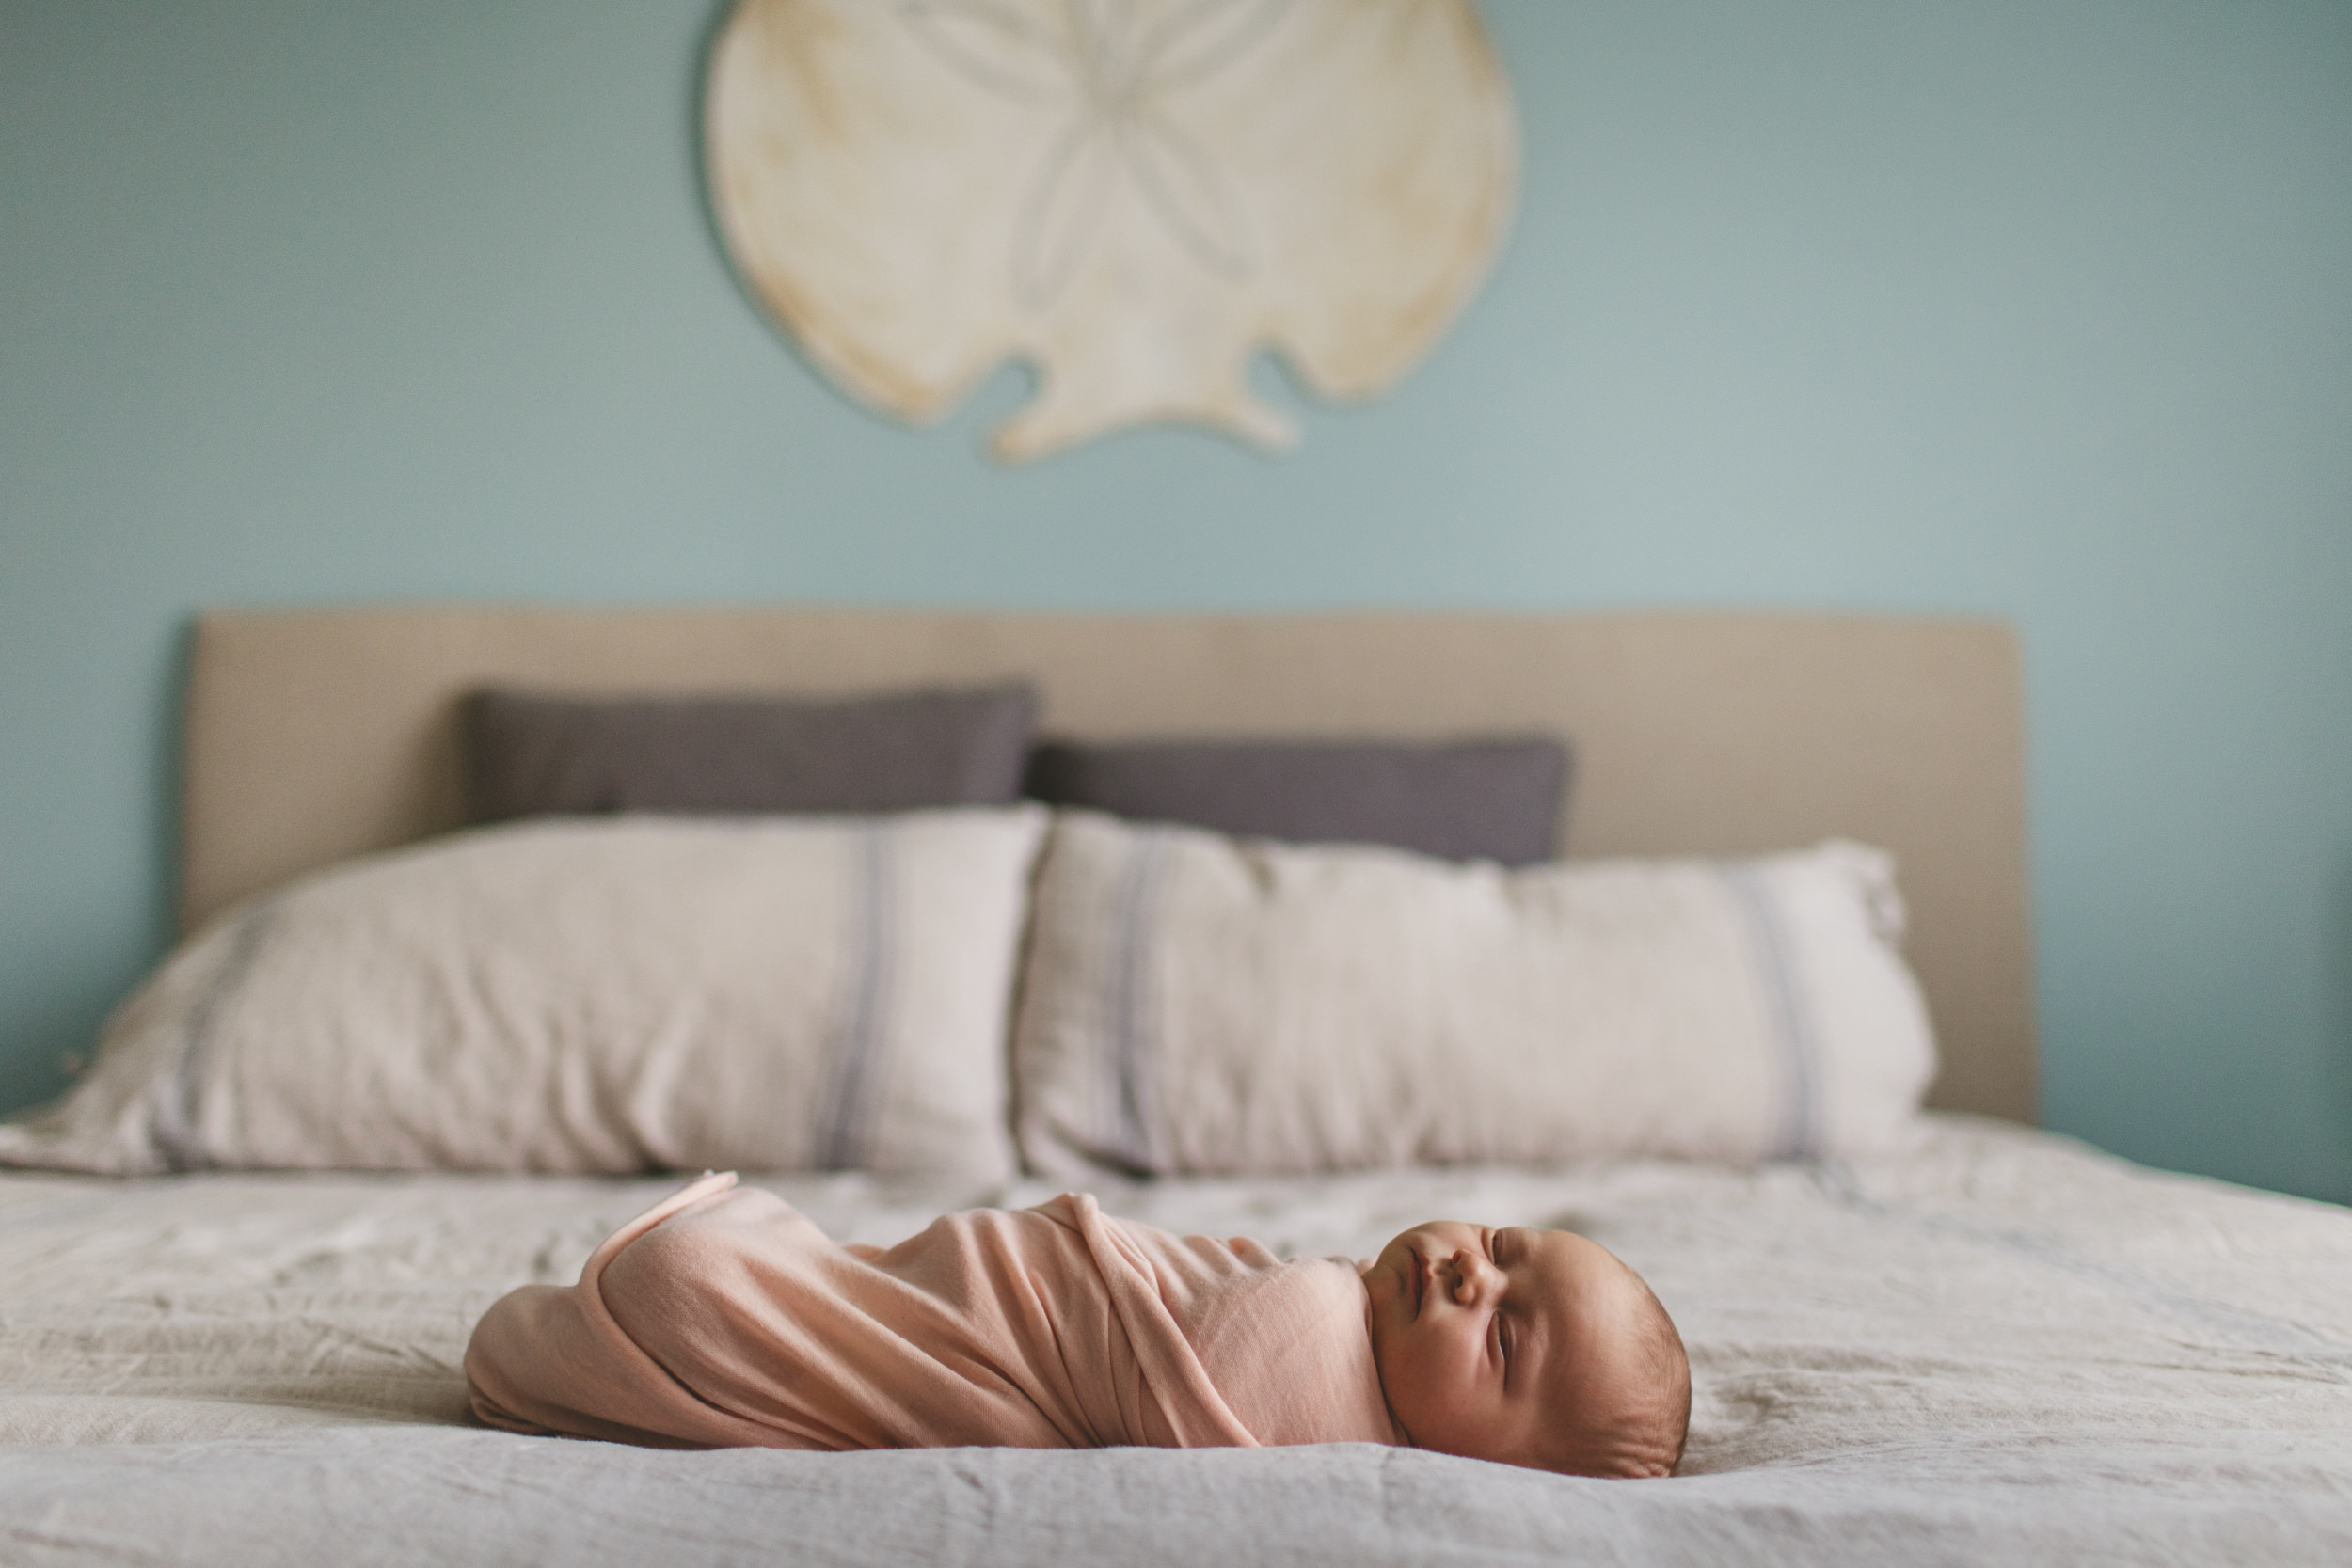 toronto lifestyle photographer ten2tenphotography 1 5 - Toronto Newborn Photographer: Baby Isla